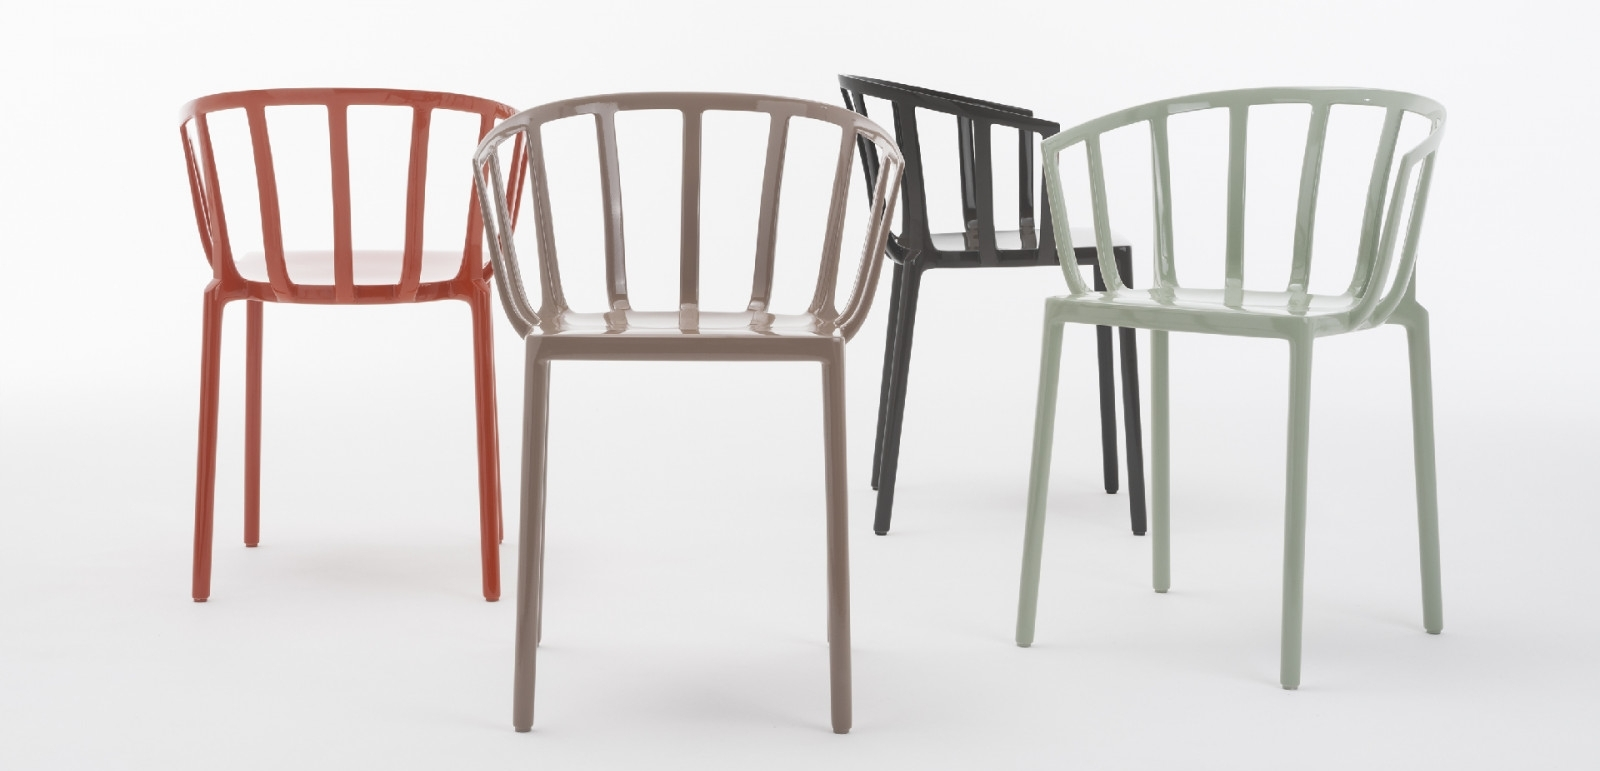 A tribute to the famous Harry's Bar in Venice, the Generic for Venice chair by Philippe Starck for Kartell.